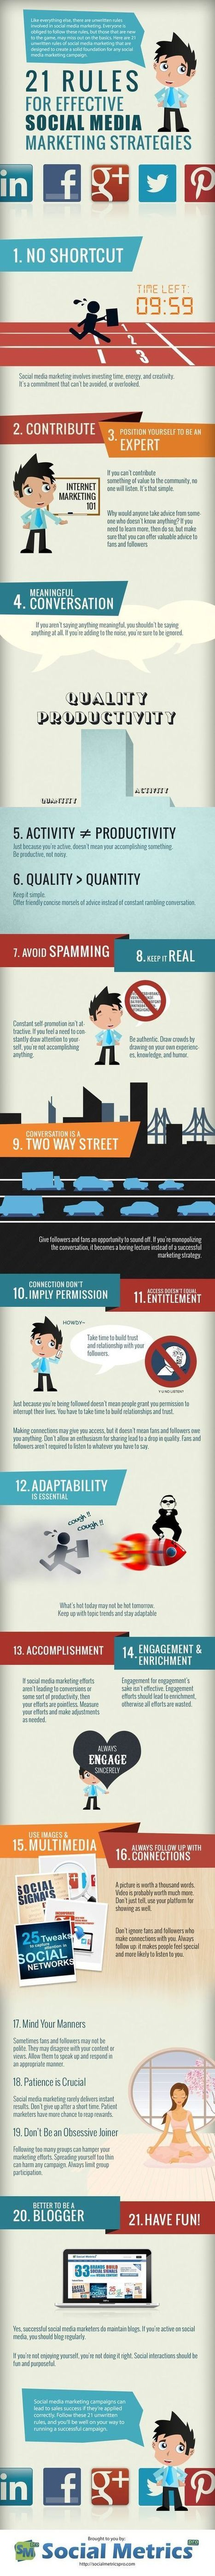 21 Rules For Effective Social Media Marketing Strategies [Infographic] | Digital Healthcare | Scoop.it